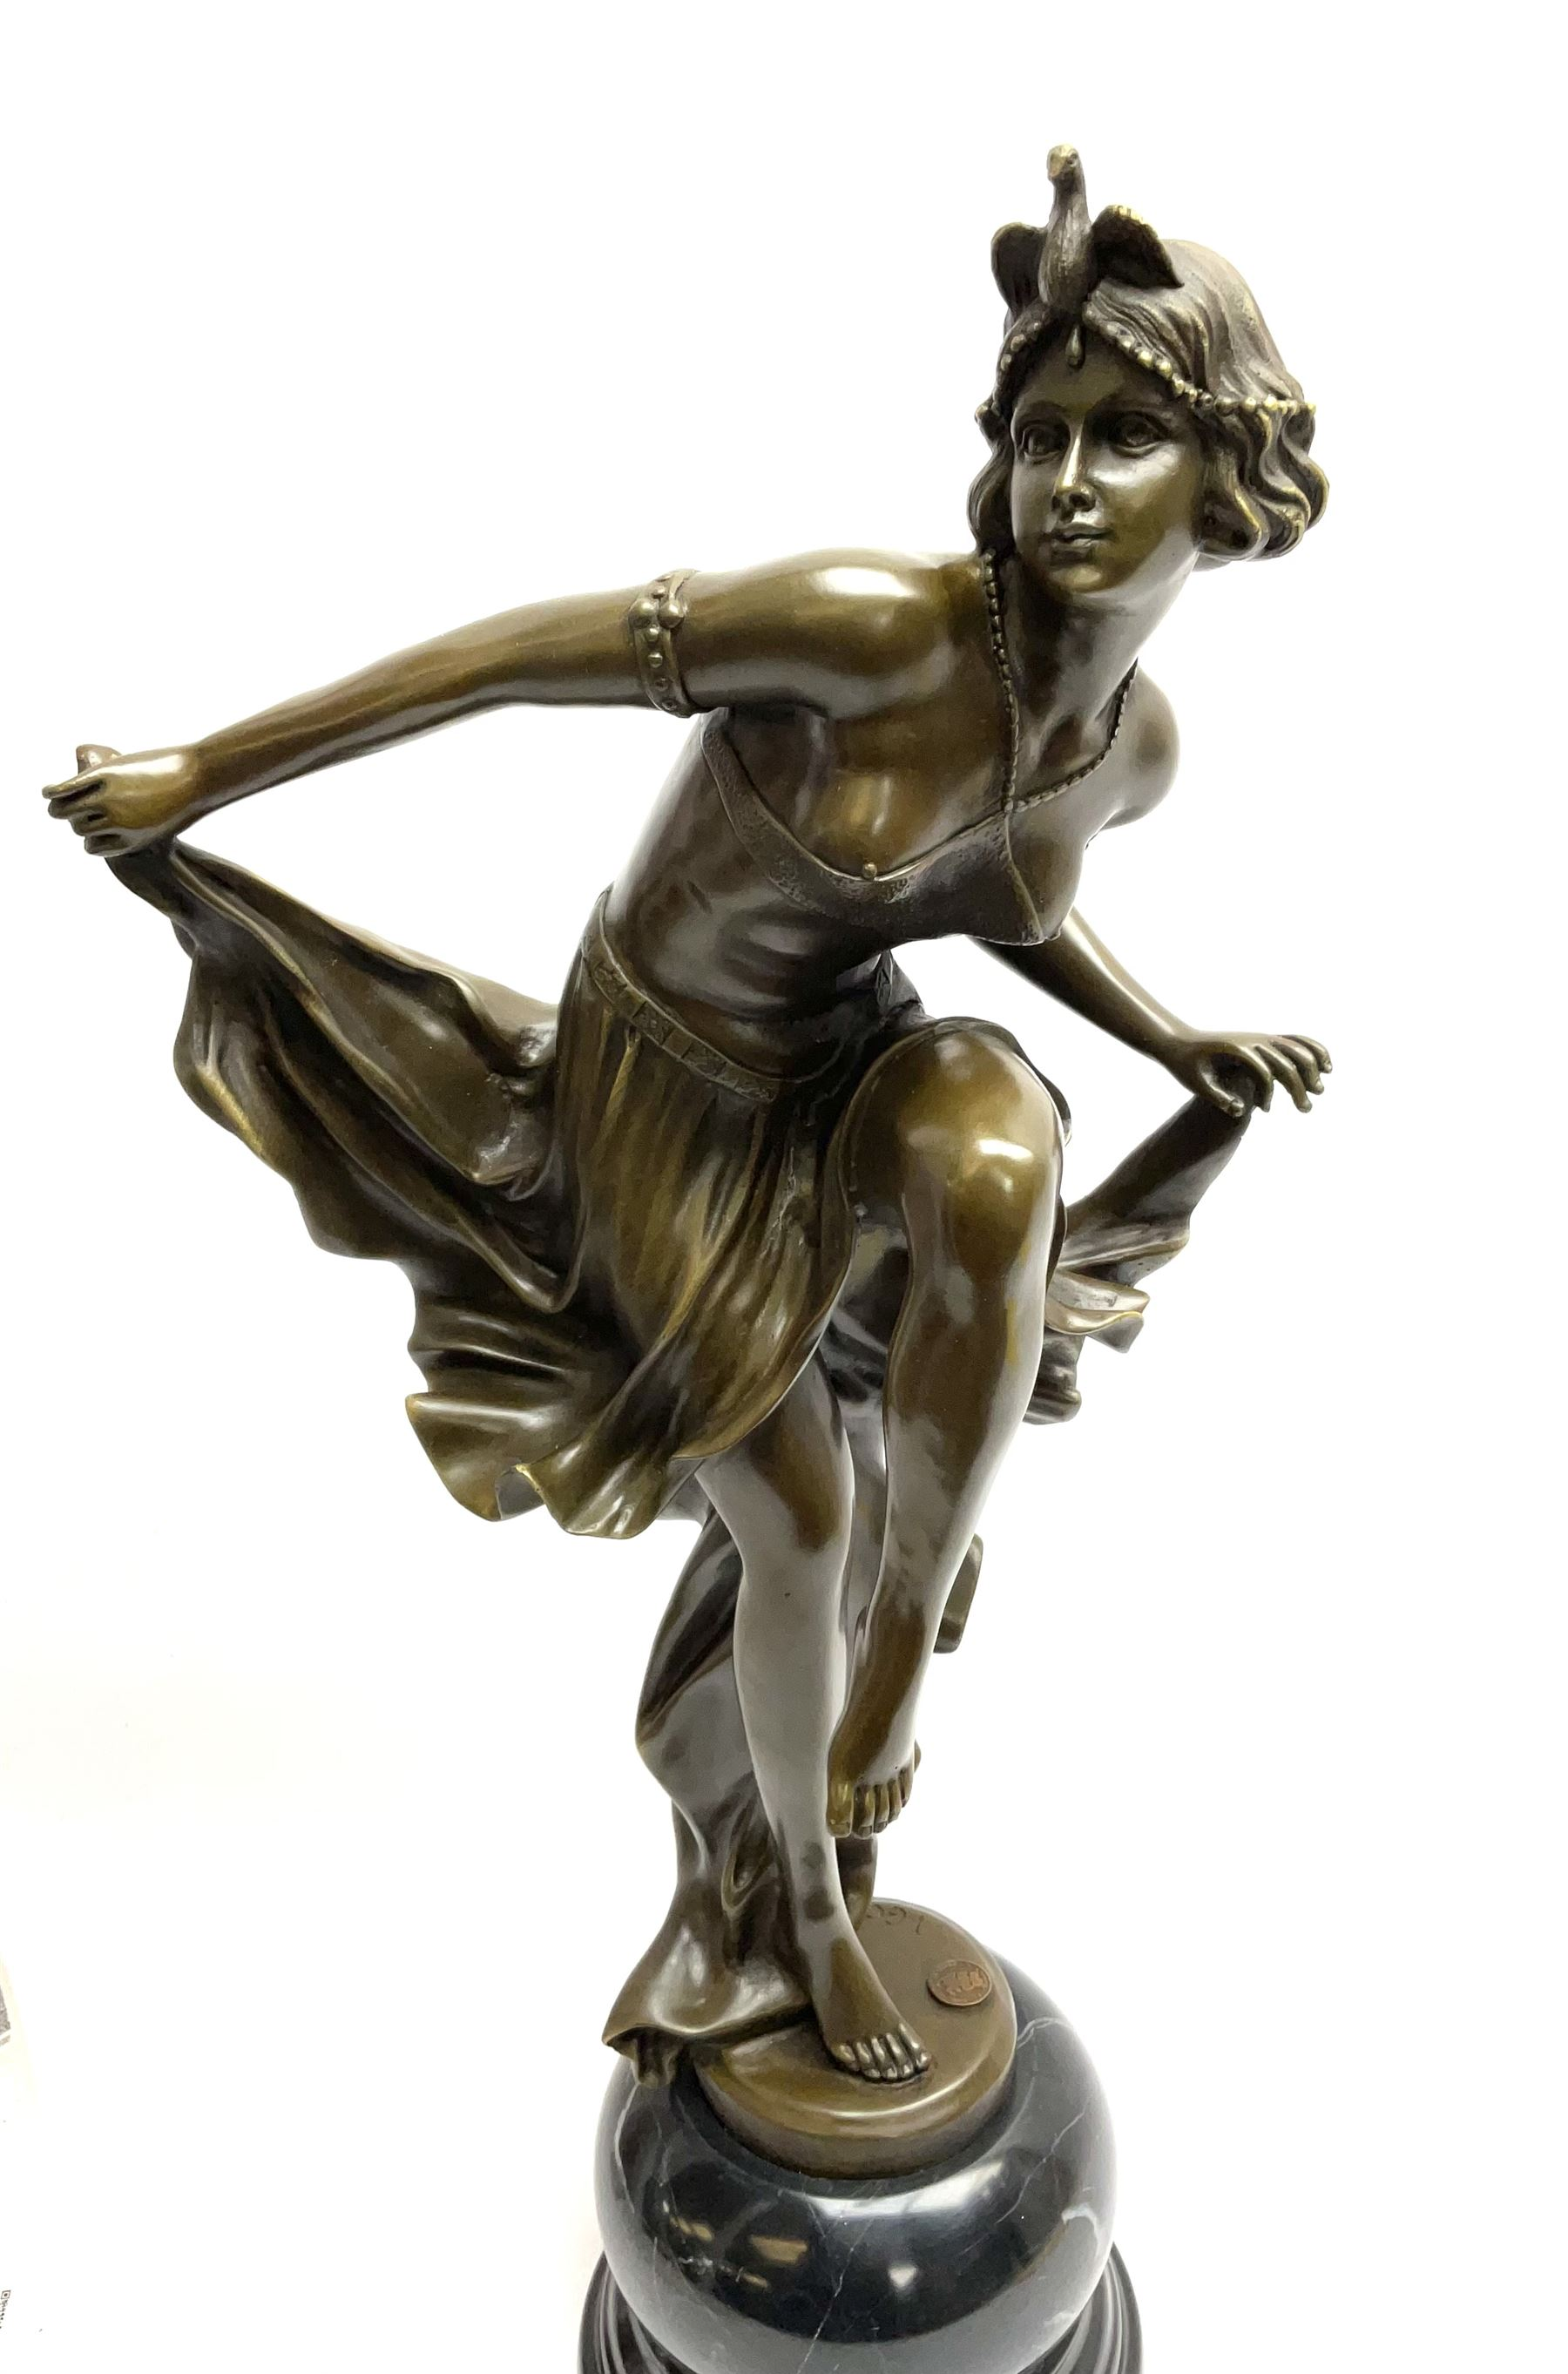 Art Deco style bronze figure of a dancer standing on one leg - Image 2 of 4